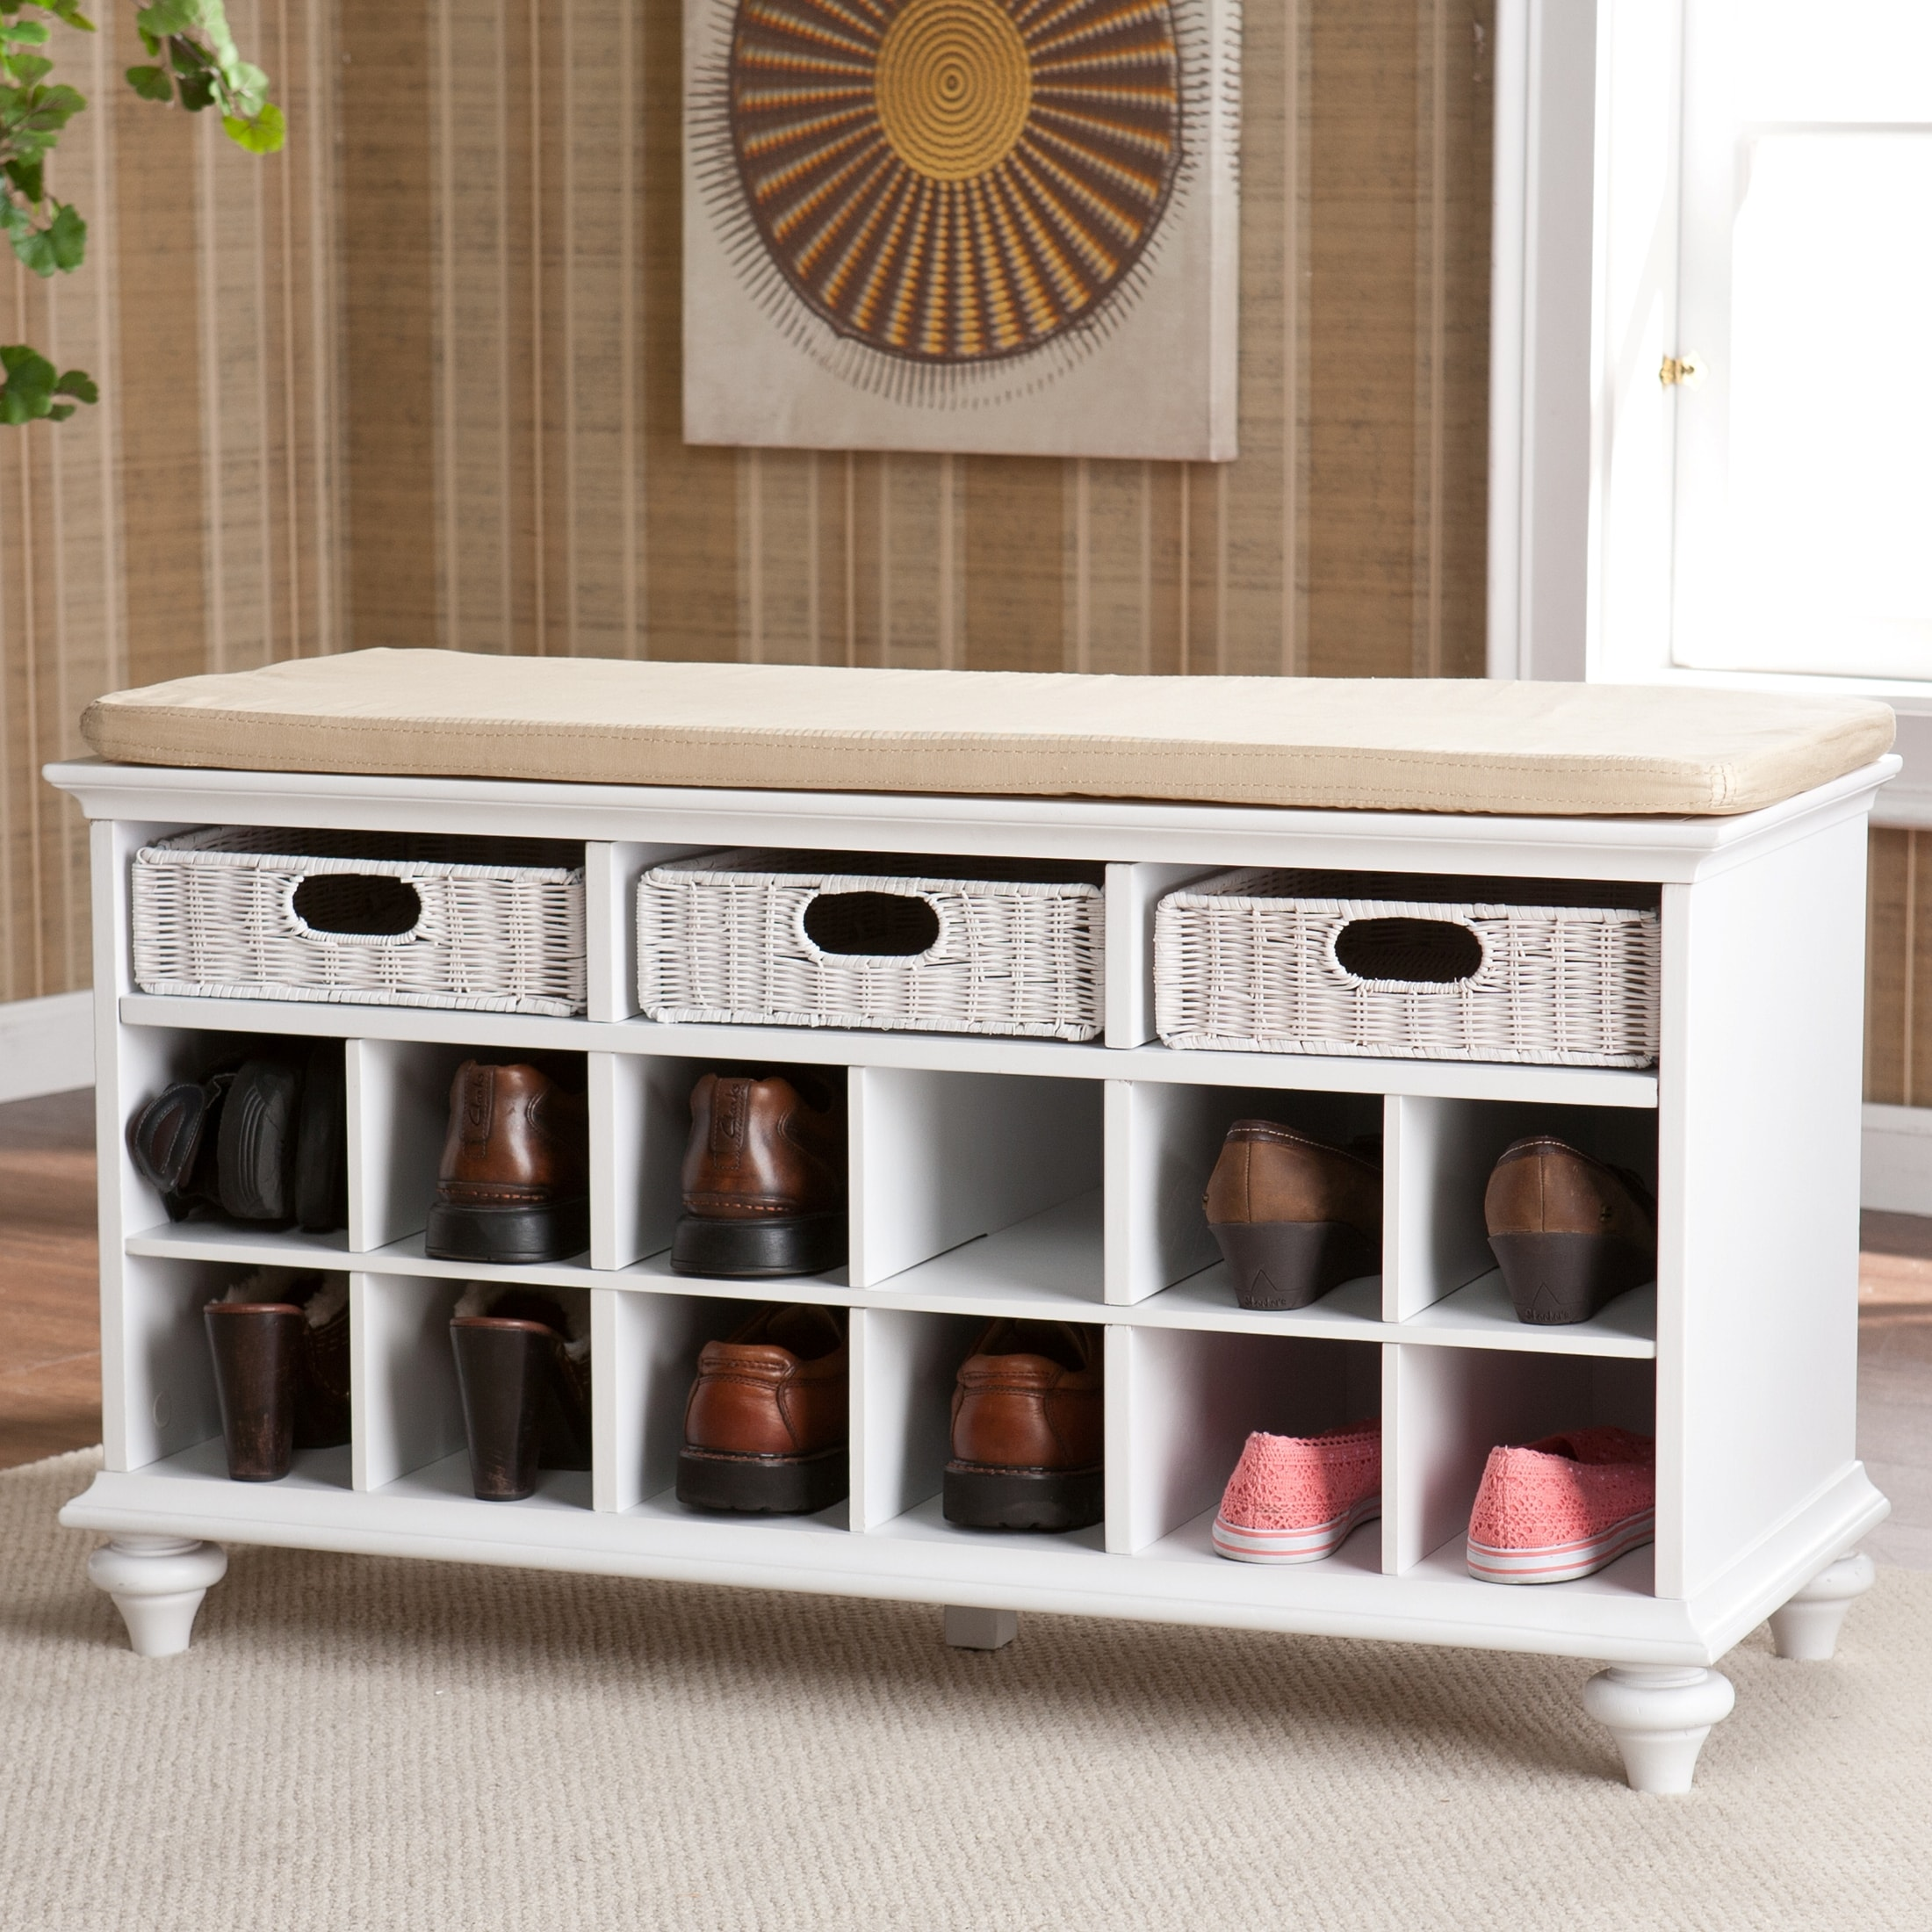 #4C6120 New White Wood Entryway Storage Bench Seat Shelf Organizer Shoe Cubby  with 2200x2200 px of Brand New Entry Seating With Storage 22002200 pic @ avoidforclosure.info